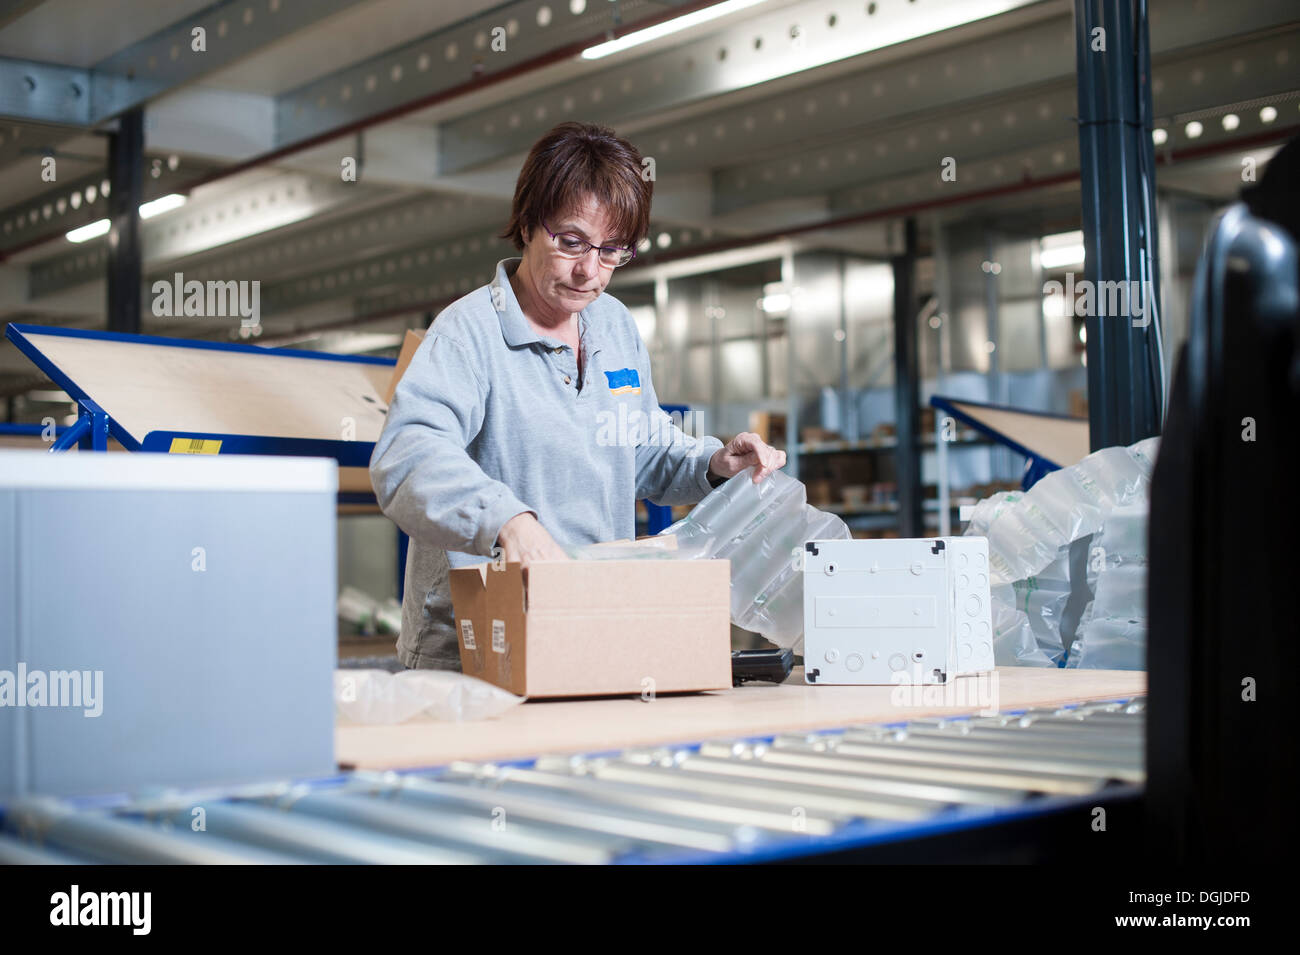 Female warehouse worker packing box for conveyor belt - Stock Image